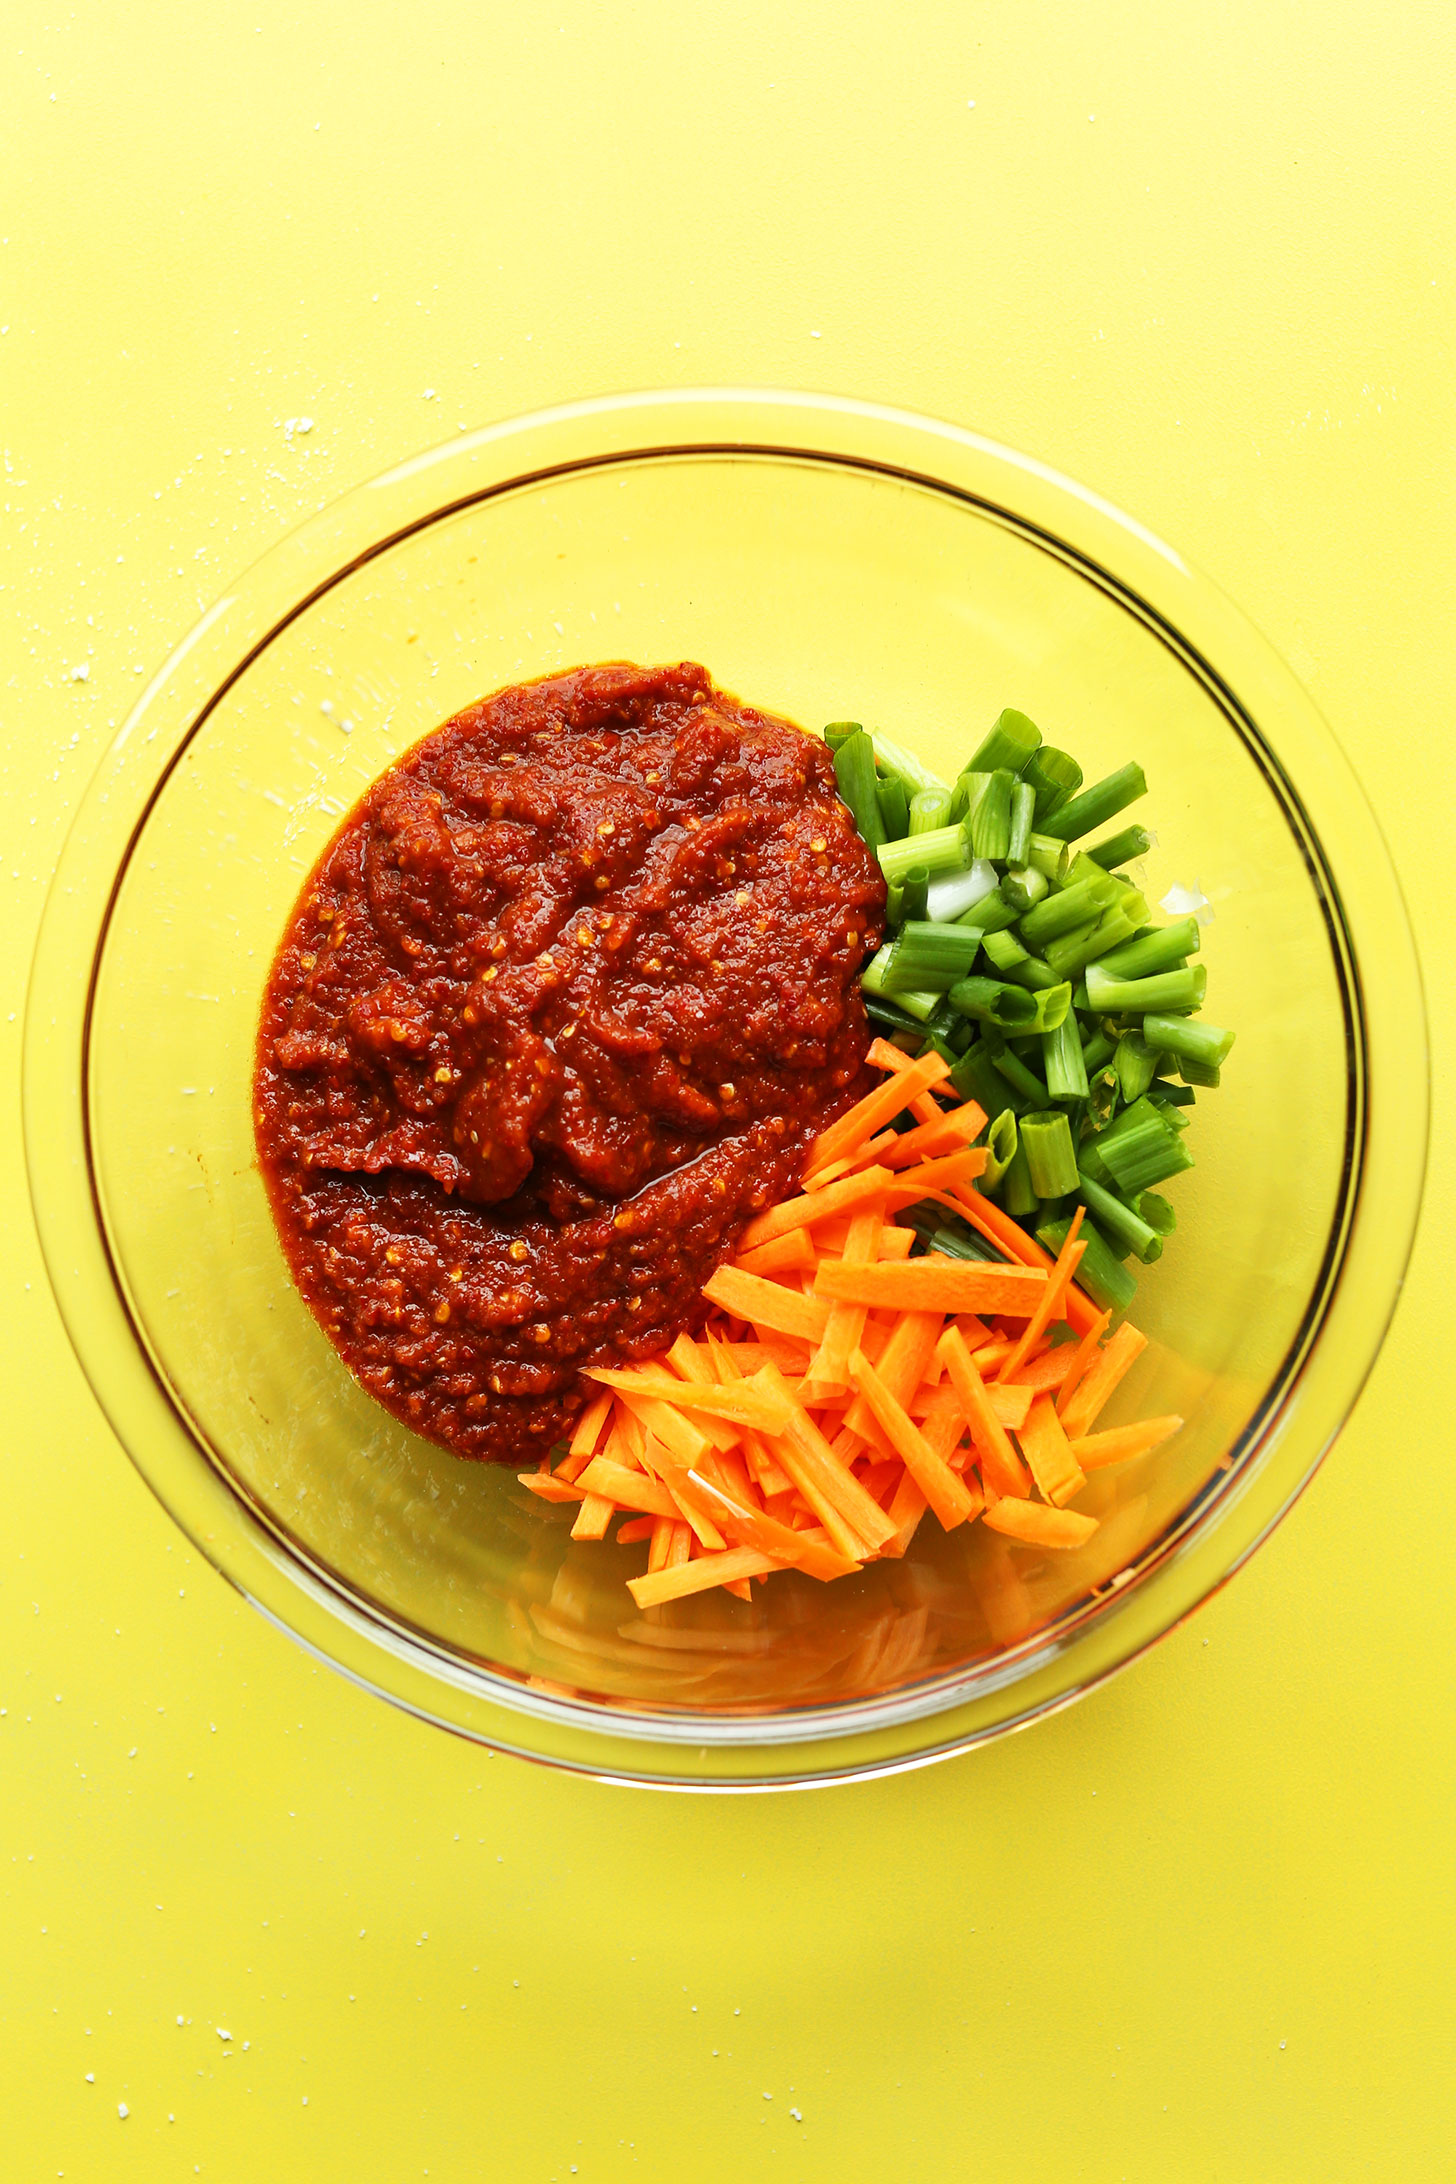 Bowl of ingredients for making our easy homemade vegan kimchi recipe